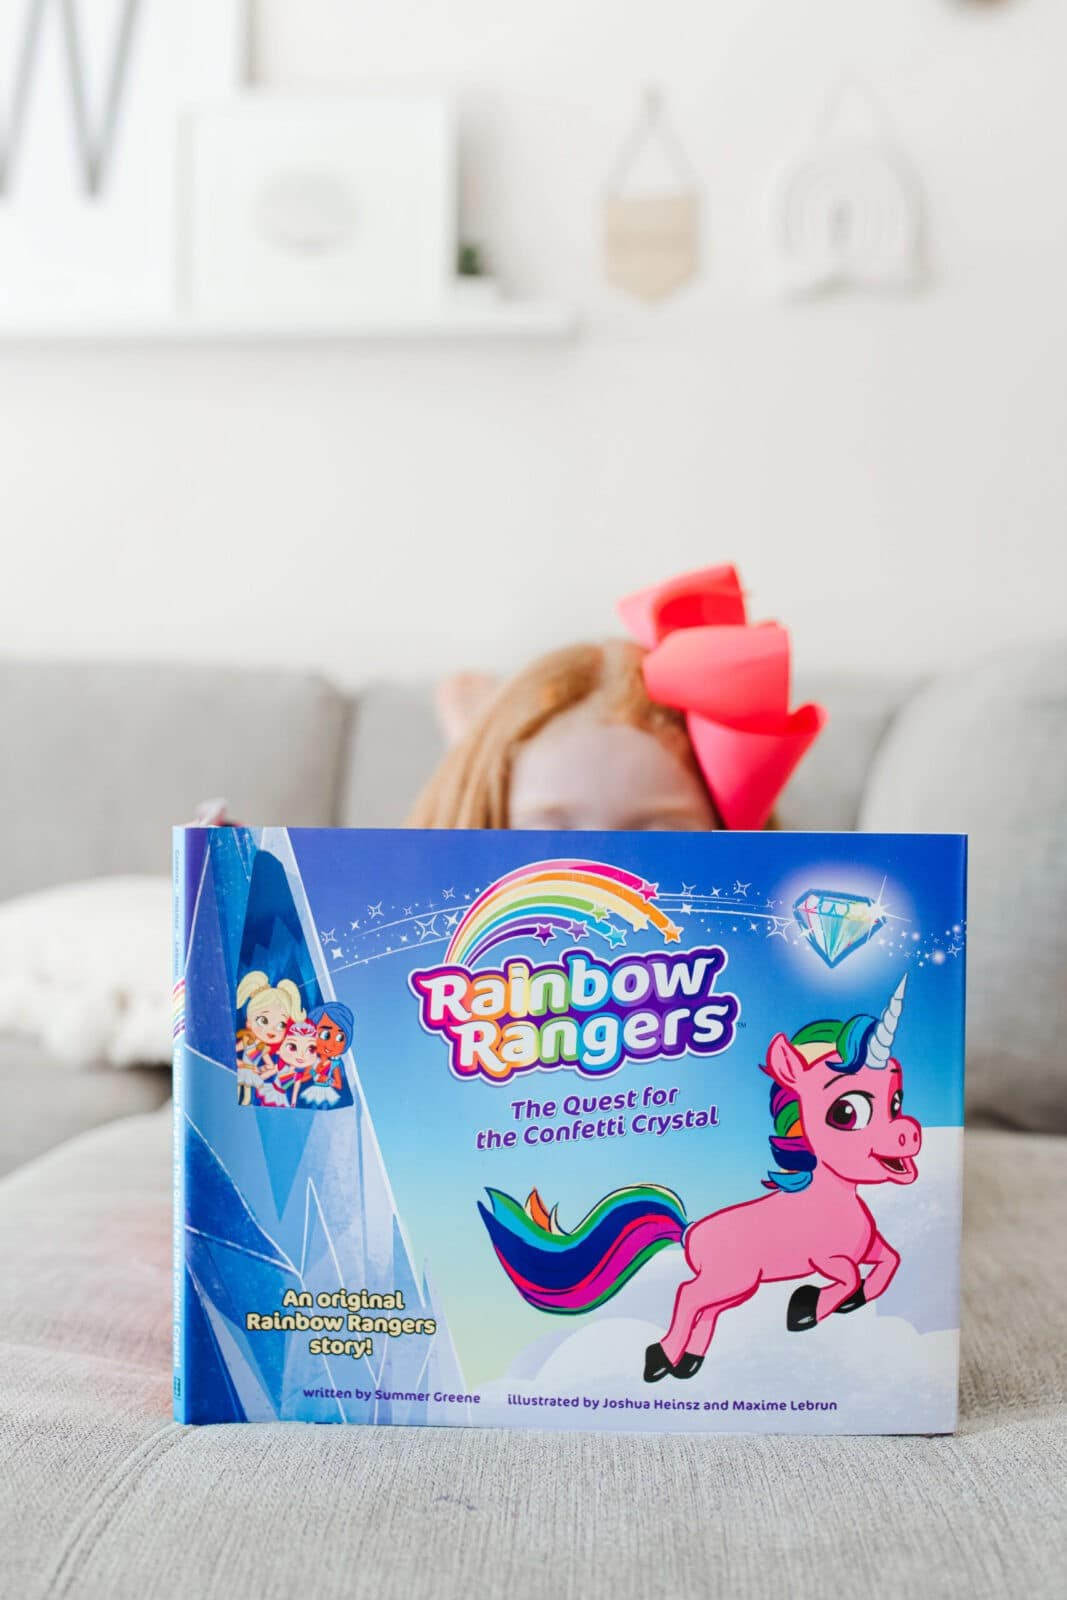 rainbow rangers the quest for the confetti crystal